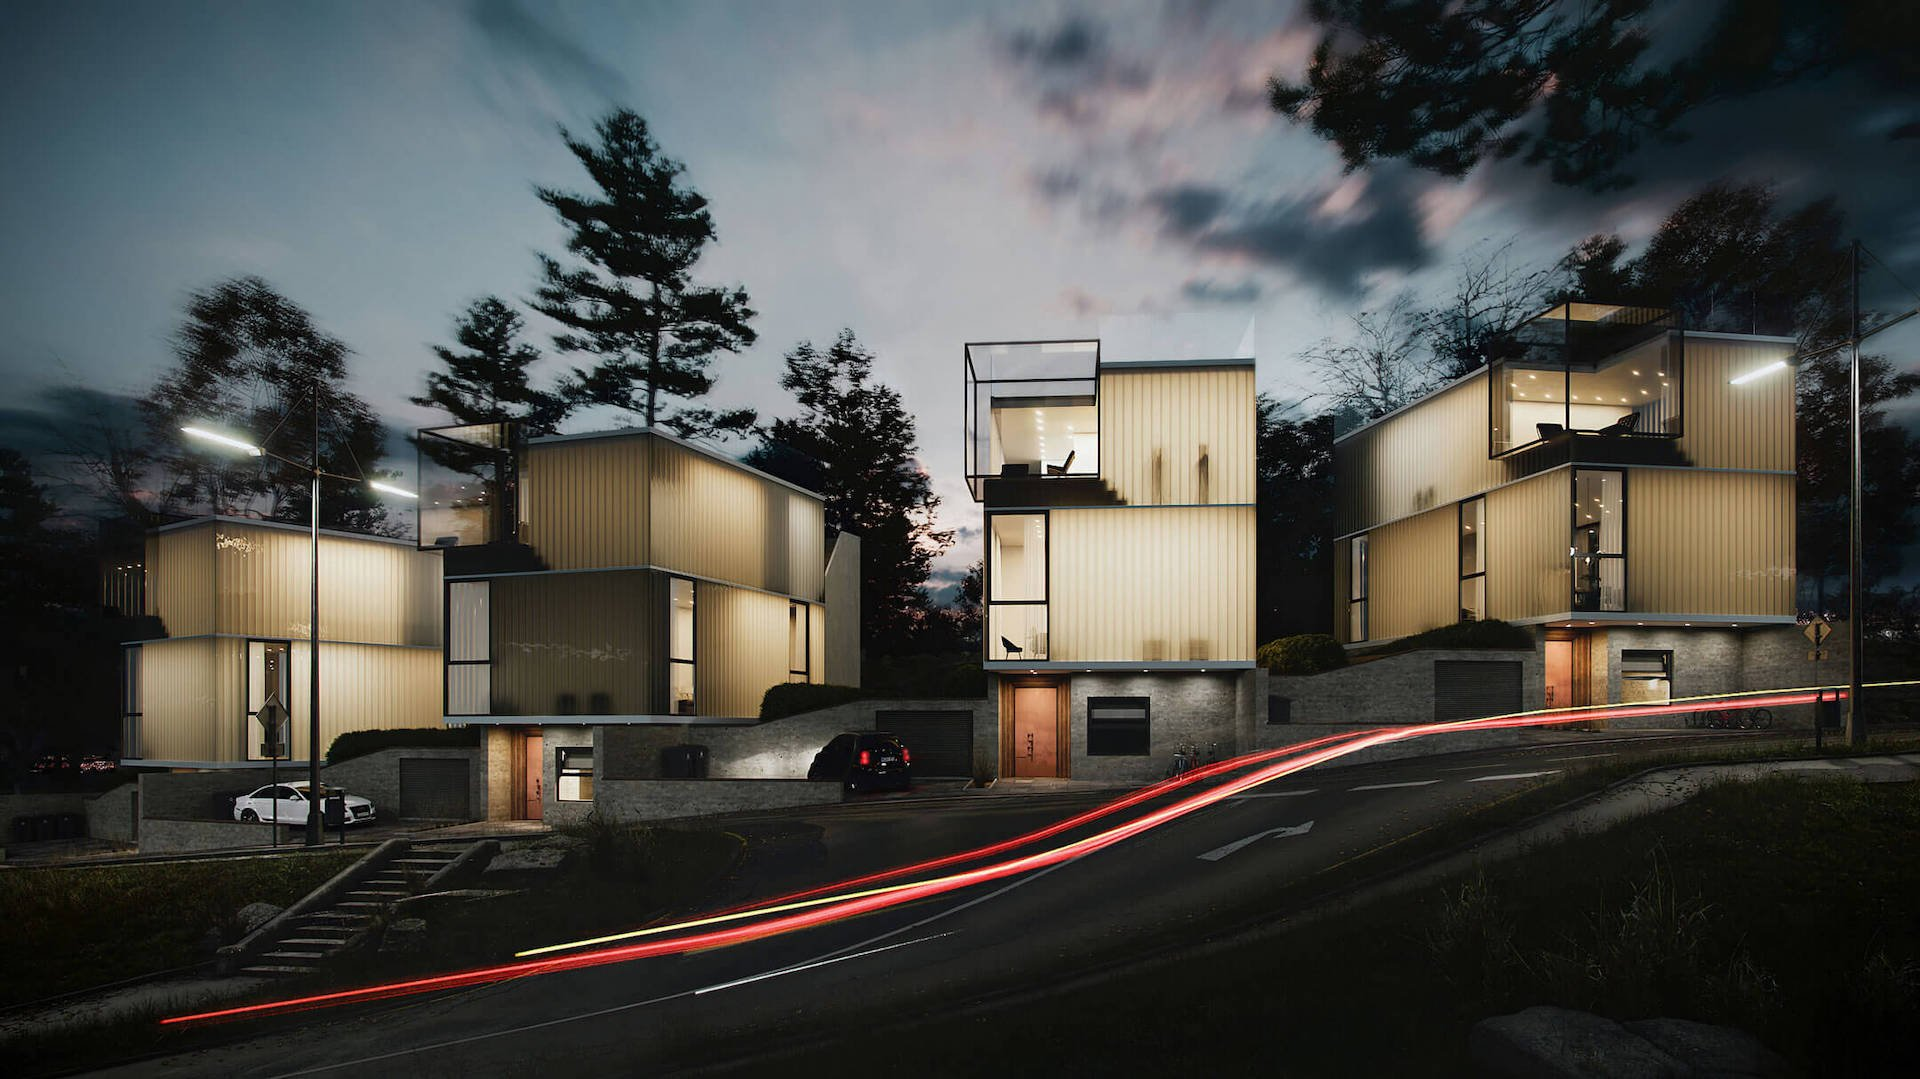 Nighttime 3D Rendering of a Residential Complex